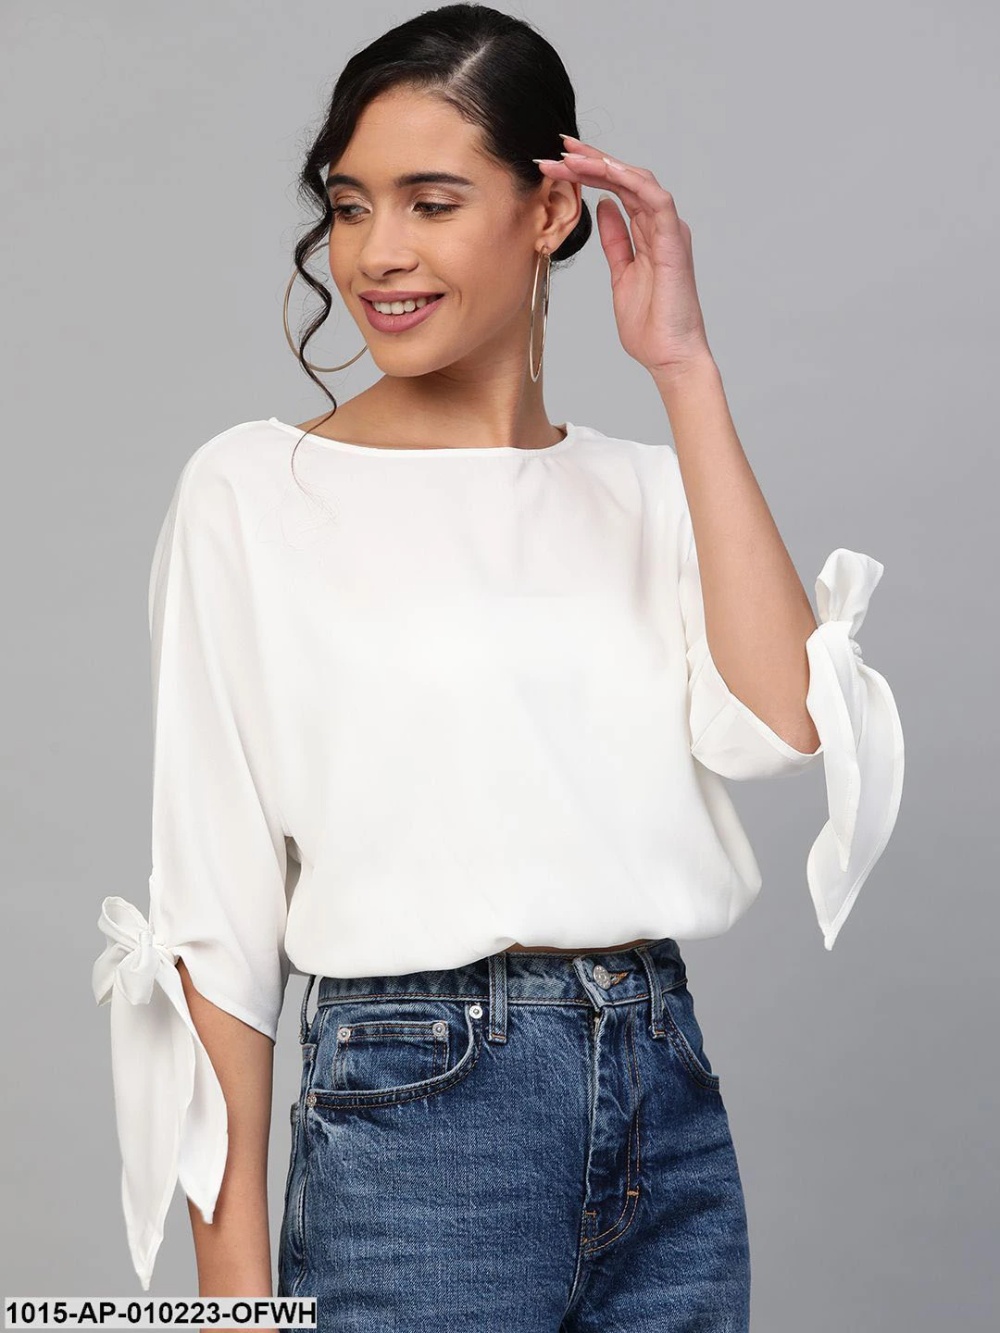 Off-White Sleeve Tie-Up Crop Top - AleyaCollections